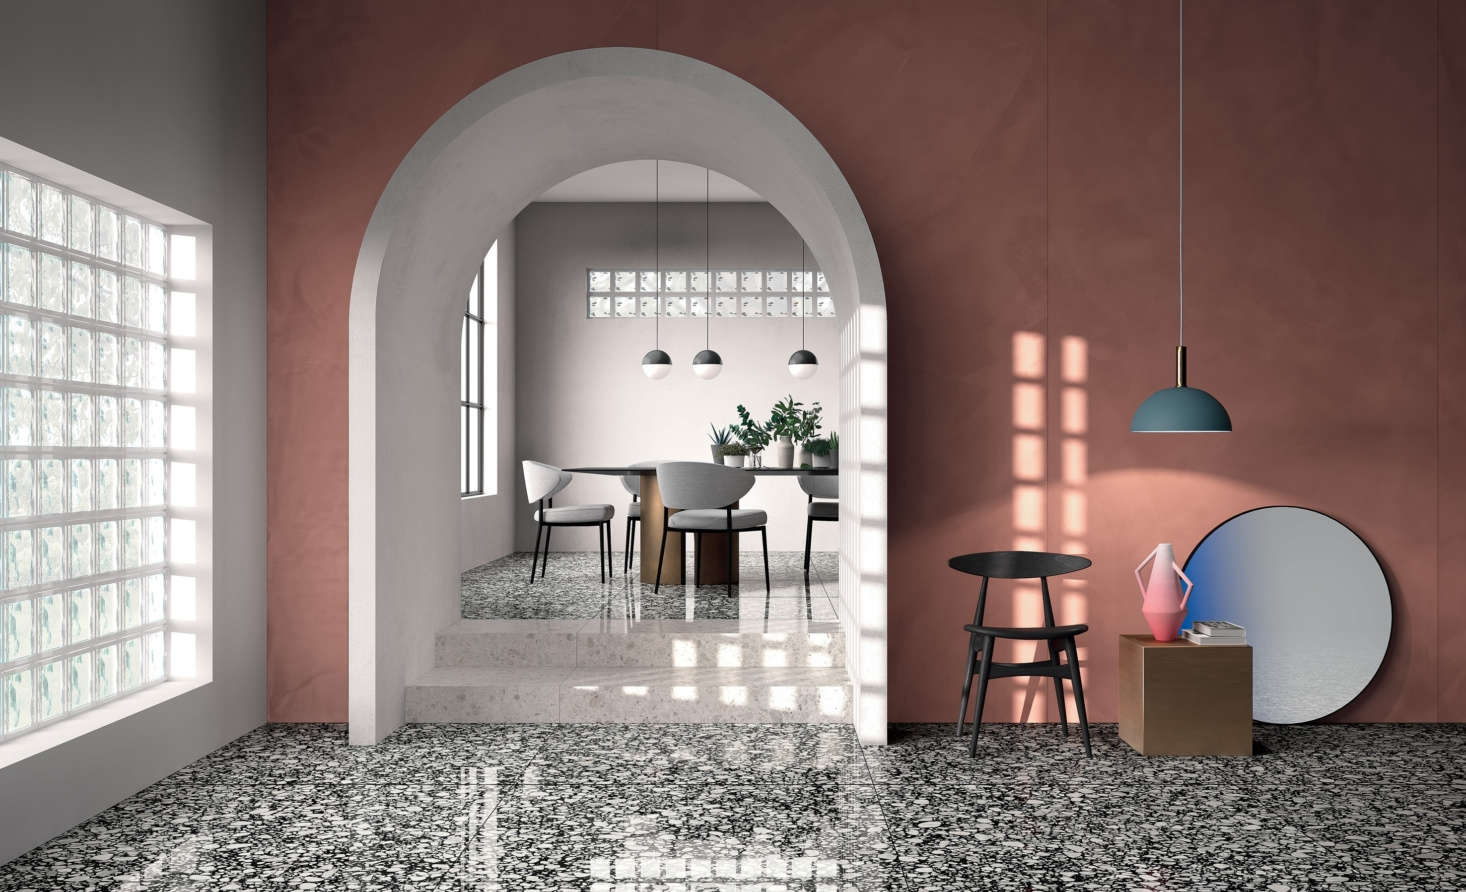 Shards, a porcelain stoneware tile collection by Fondovalle, is a riff on classic Italian terrazzo. The manufacturers used digital printing technology to replicate the look of marble and stone chips set into concrete.